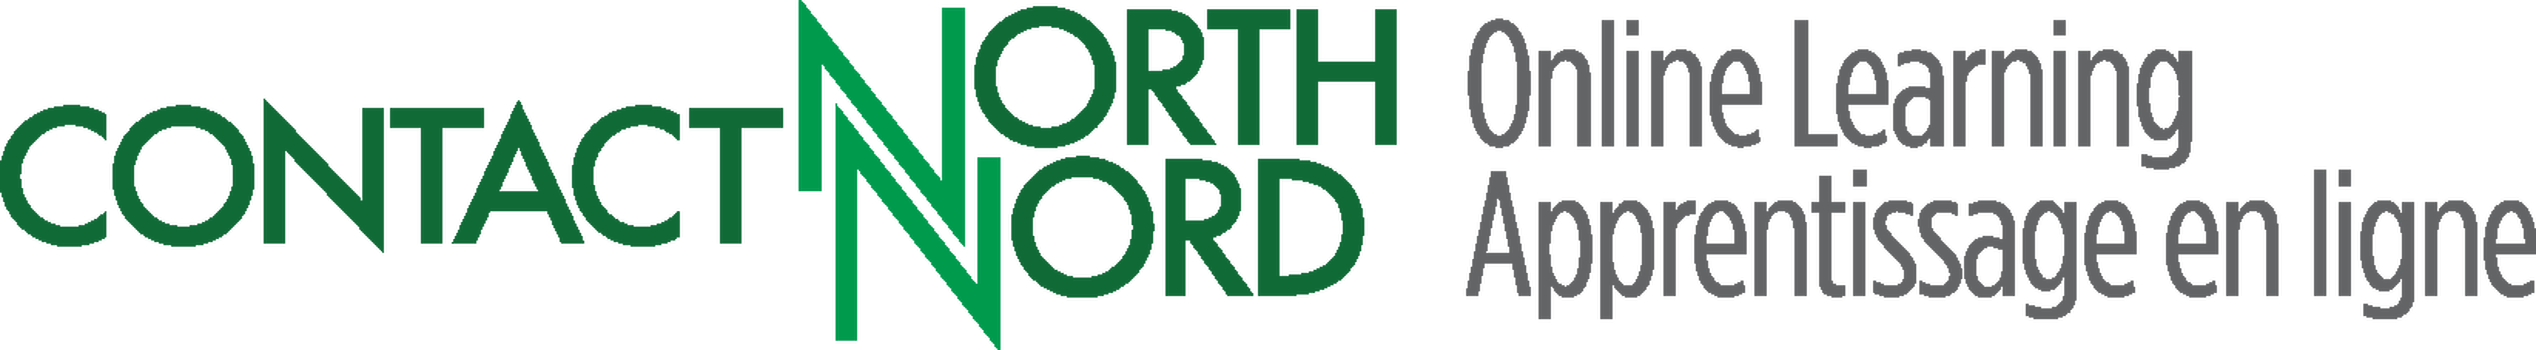 Contact North | Contact Nord logo